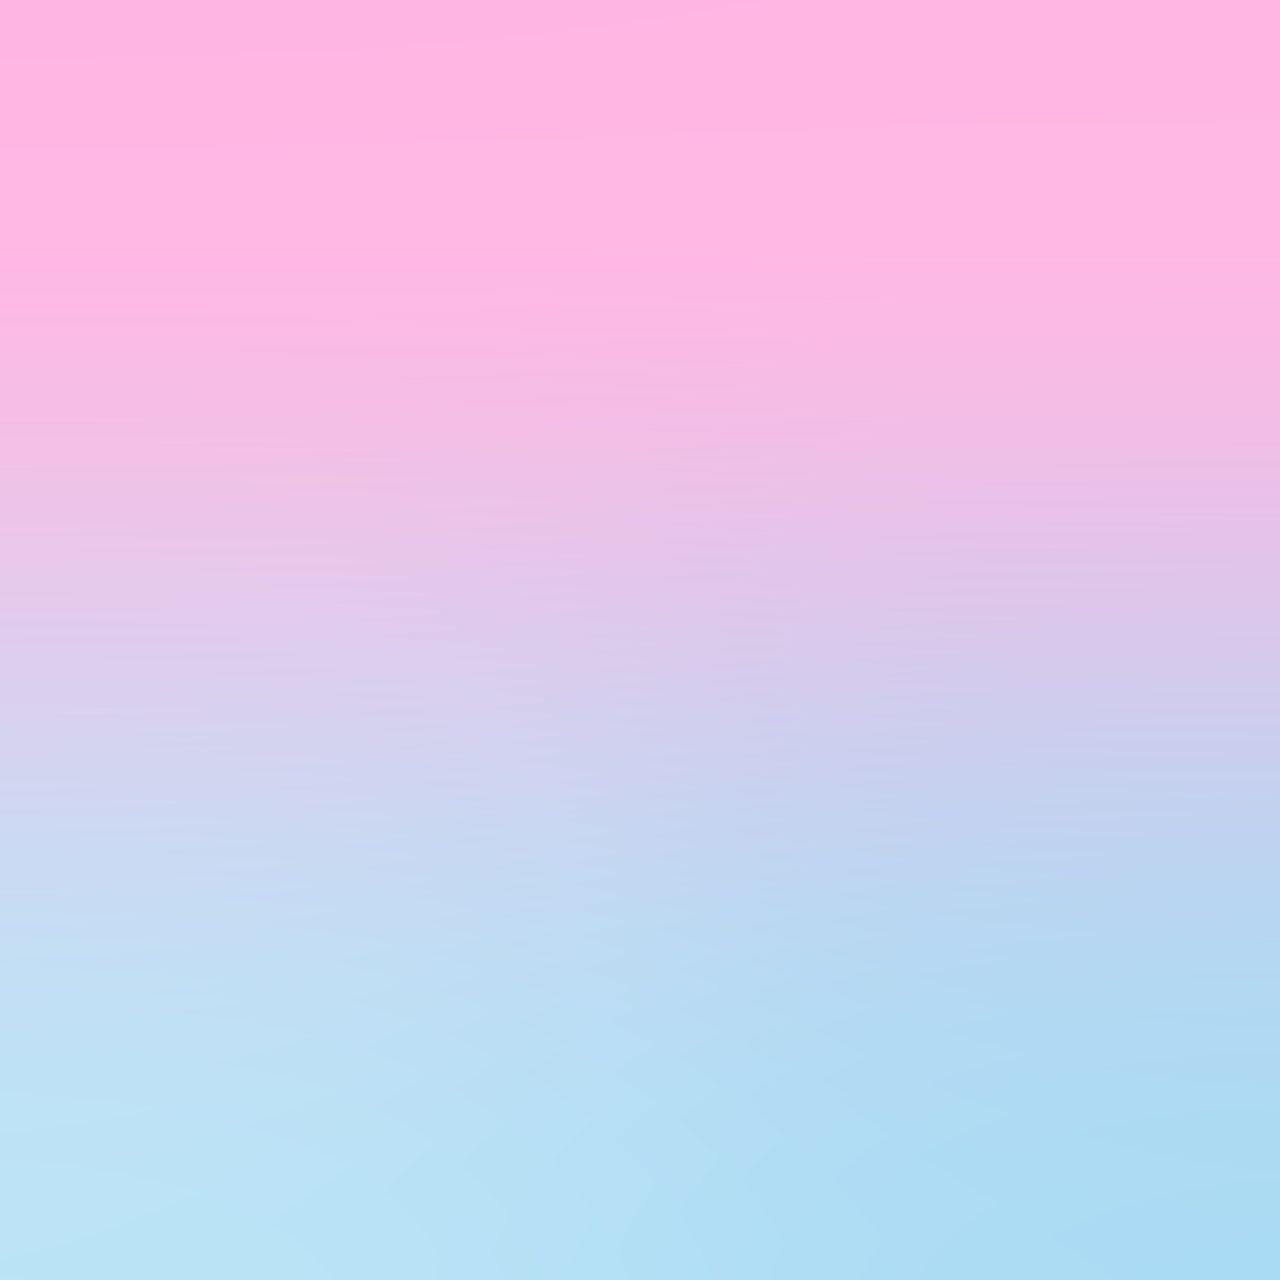 Pastel Ombre Wallpapers - Wallpaper Cave